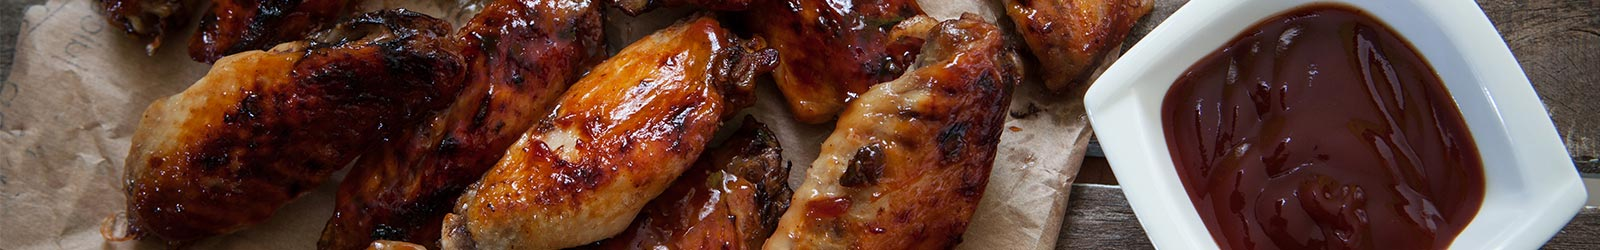 Barbecue wings